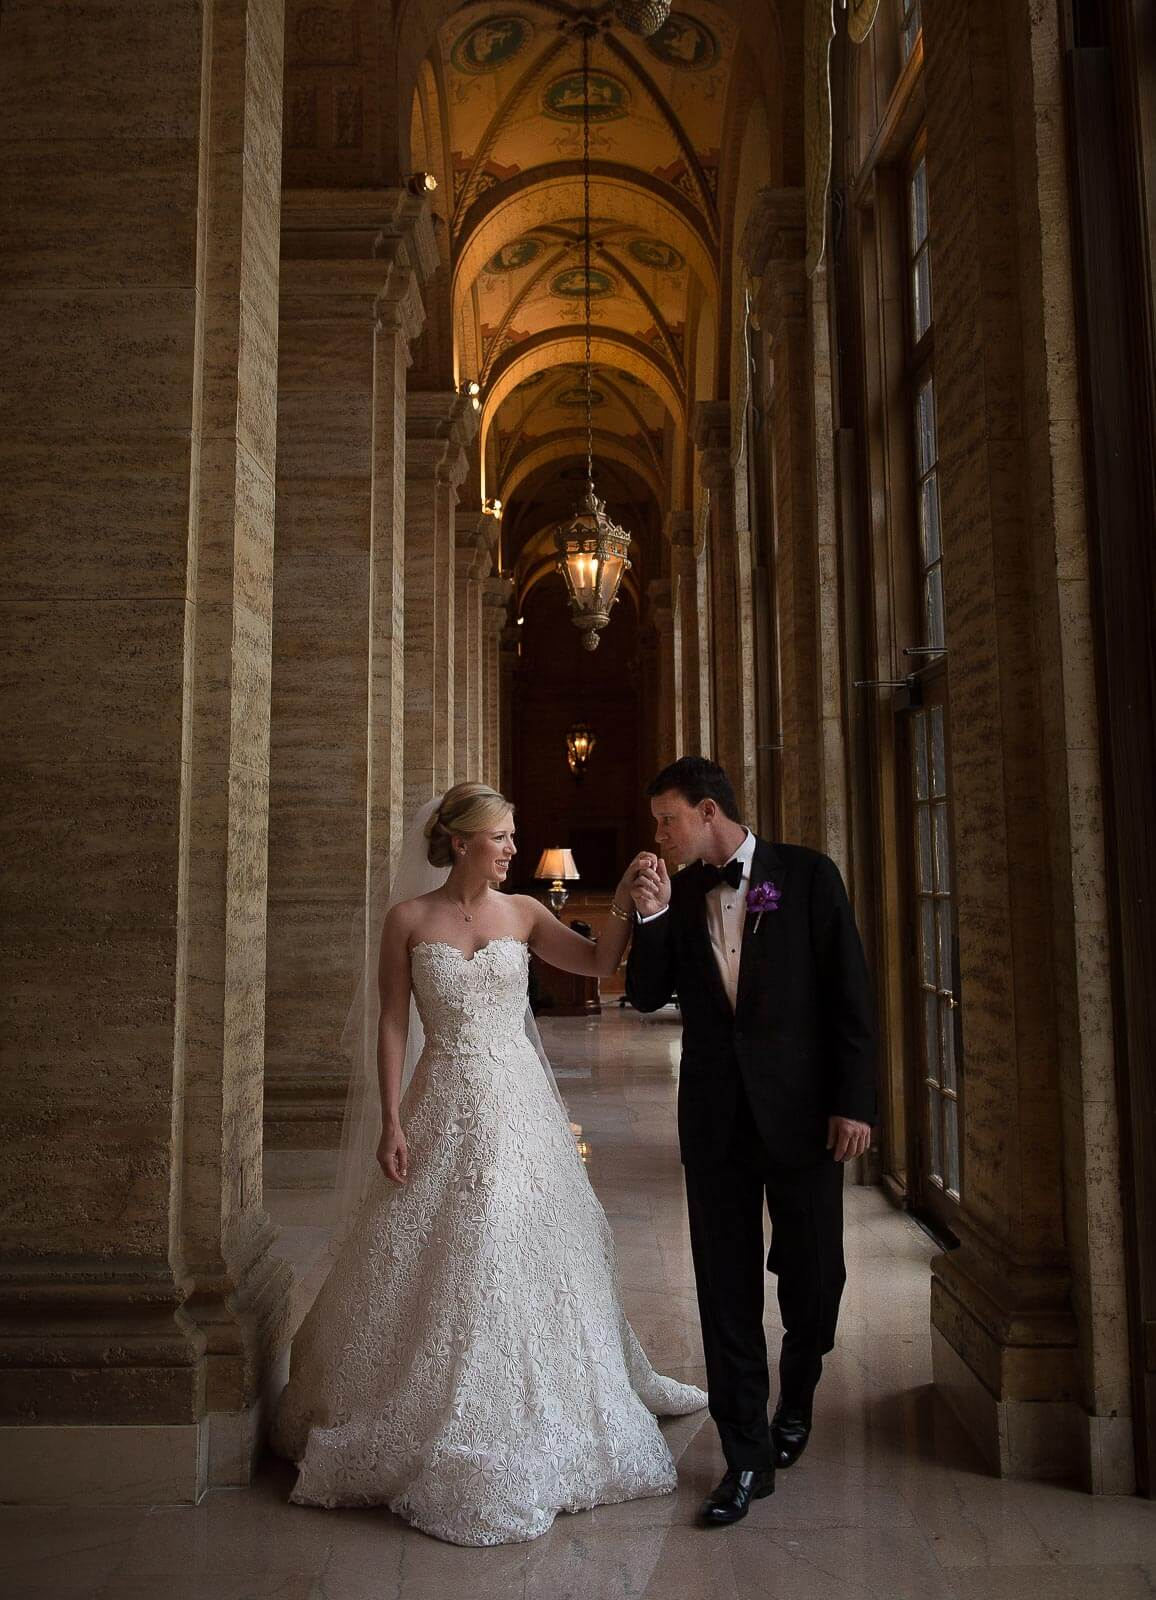 Morgan Pressel's Luxurious Breakers Hotel Wedding